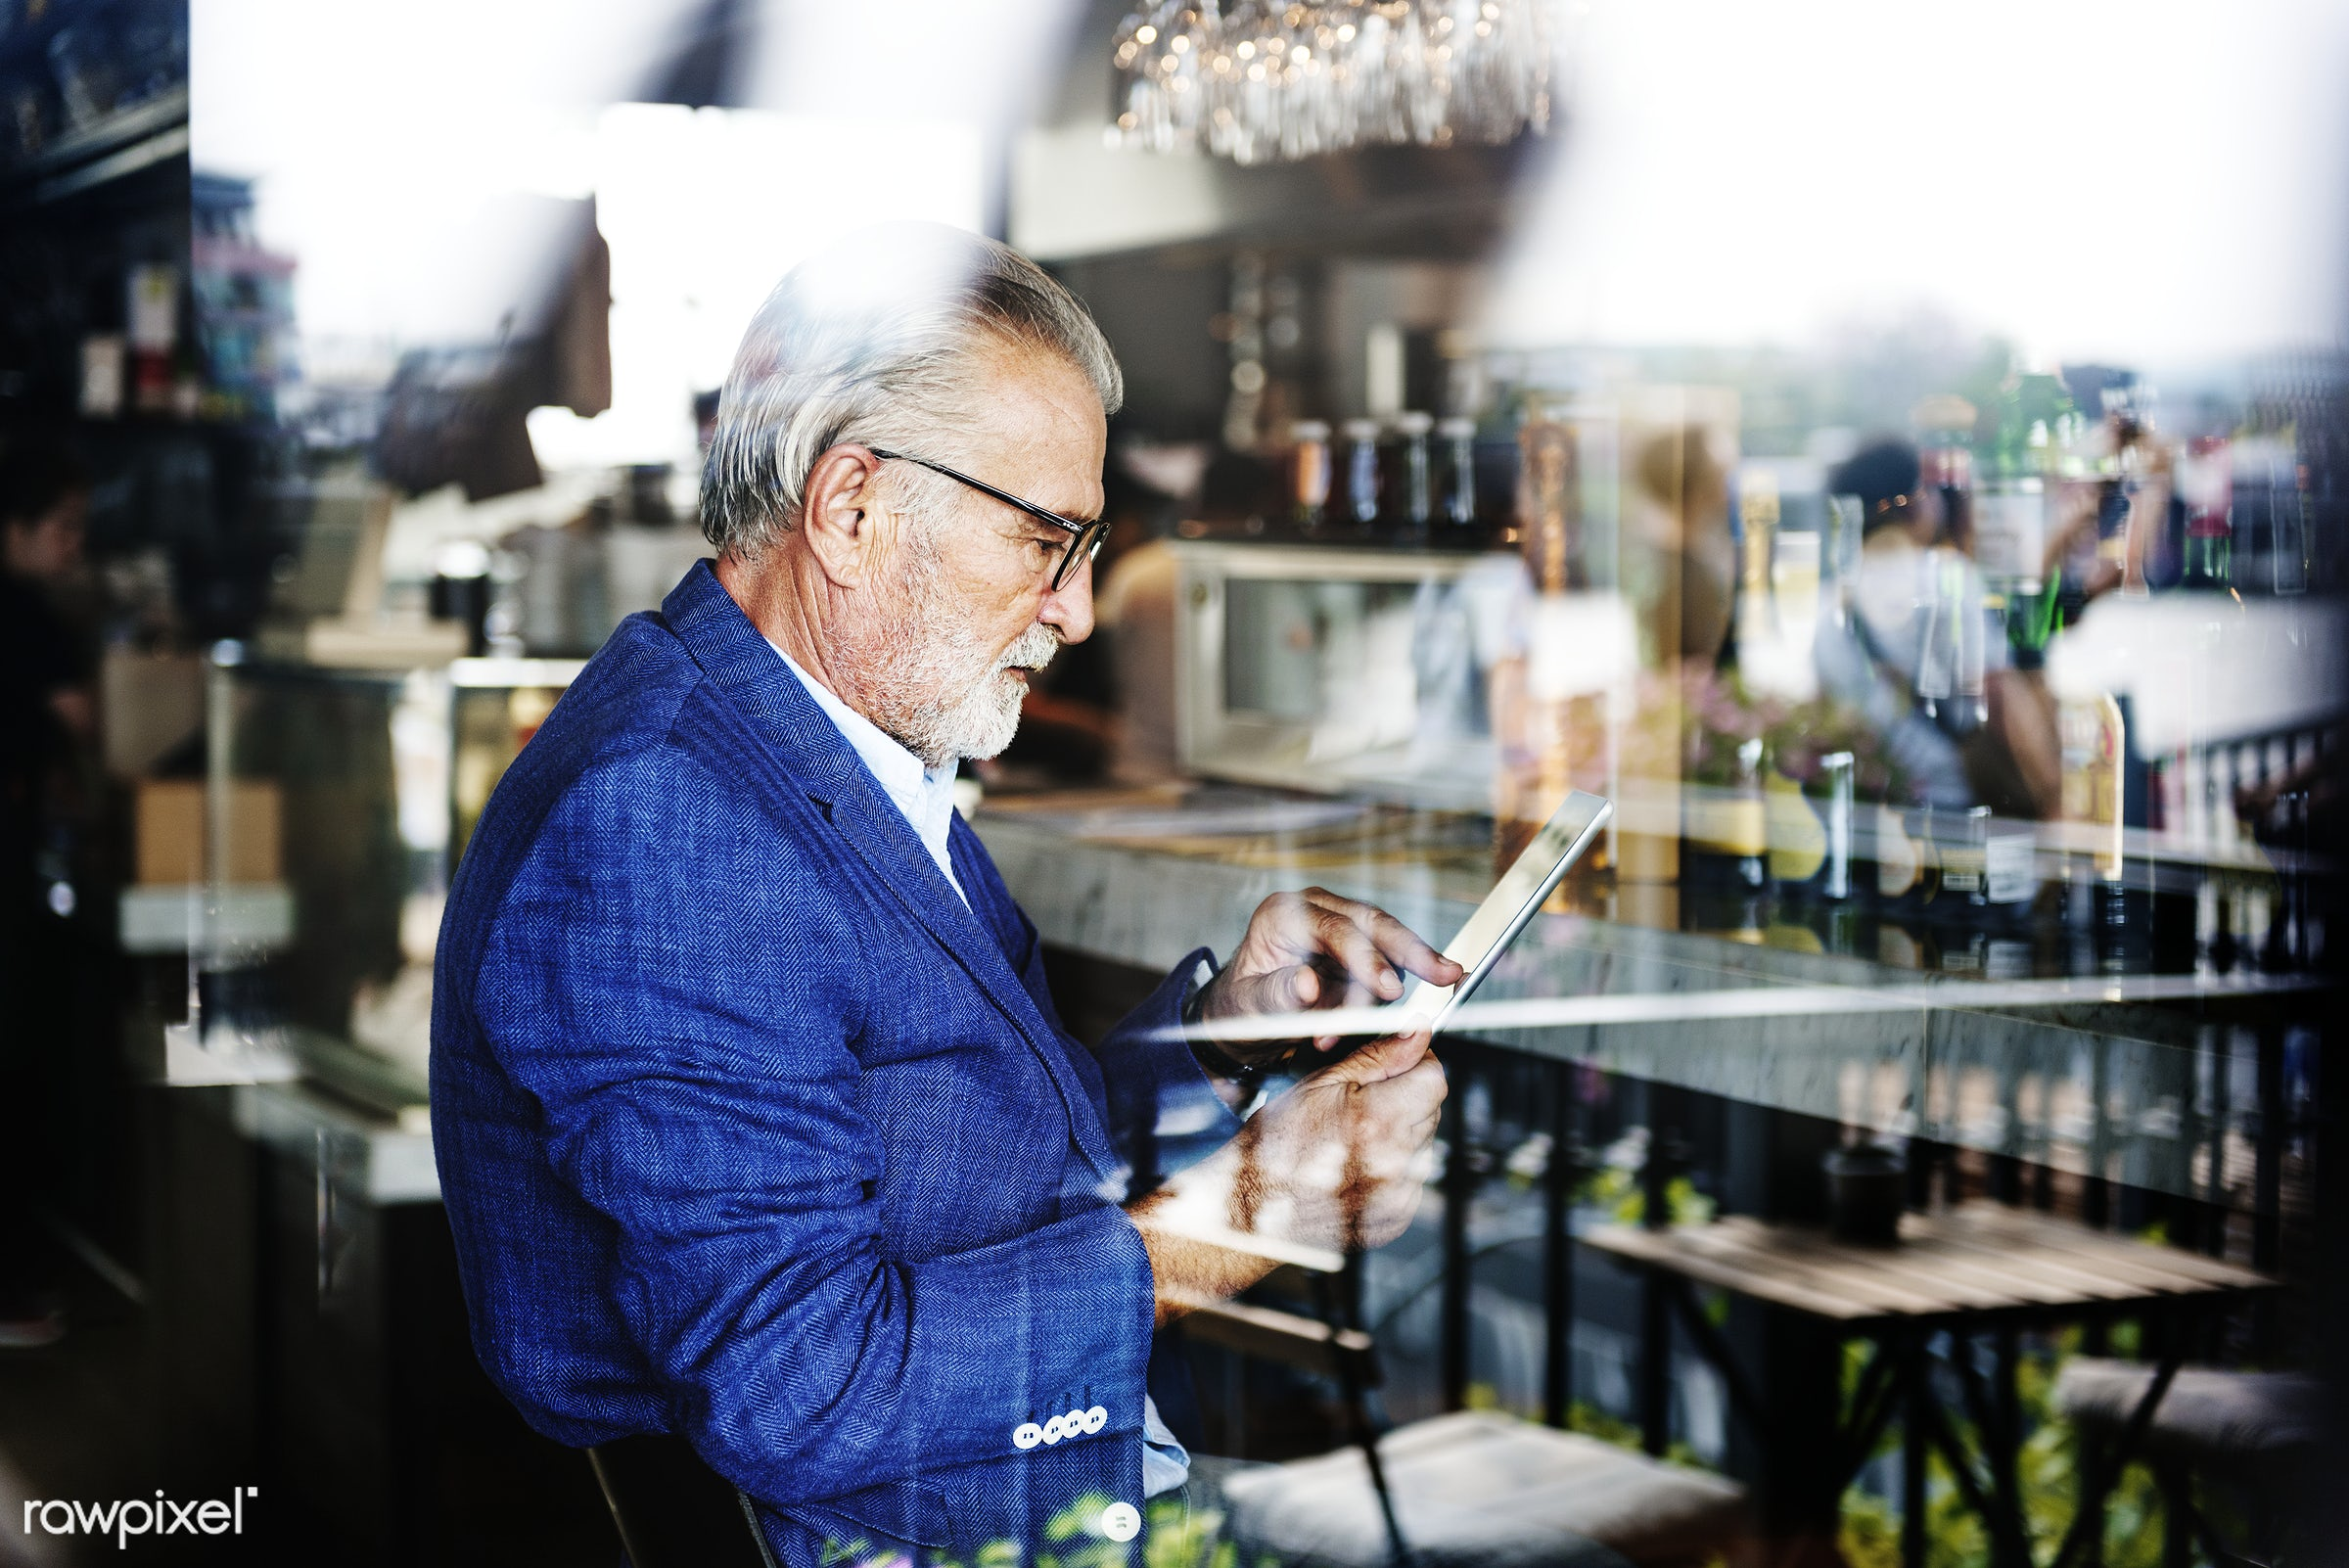 Elderly man is using digital tablet - alone, beard, casual, cellphone, communication, connection, device, digital, elderly,...